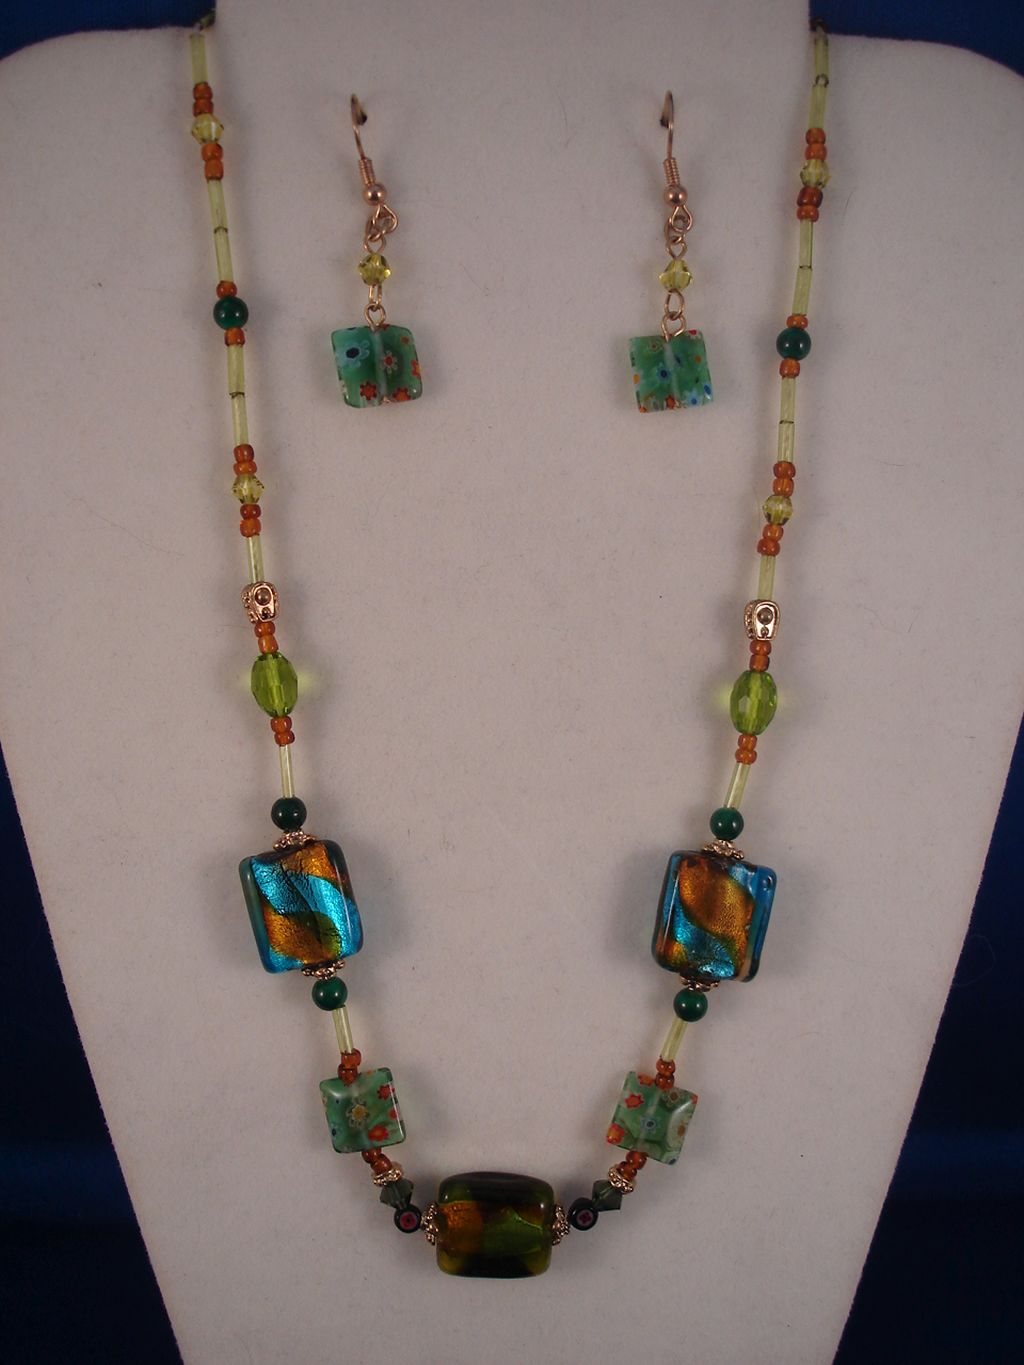 Stained Glass Set of Necklace & Earrings, Non-Allergic Jewelry